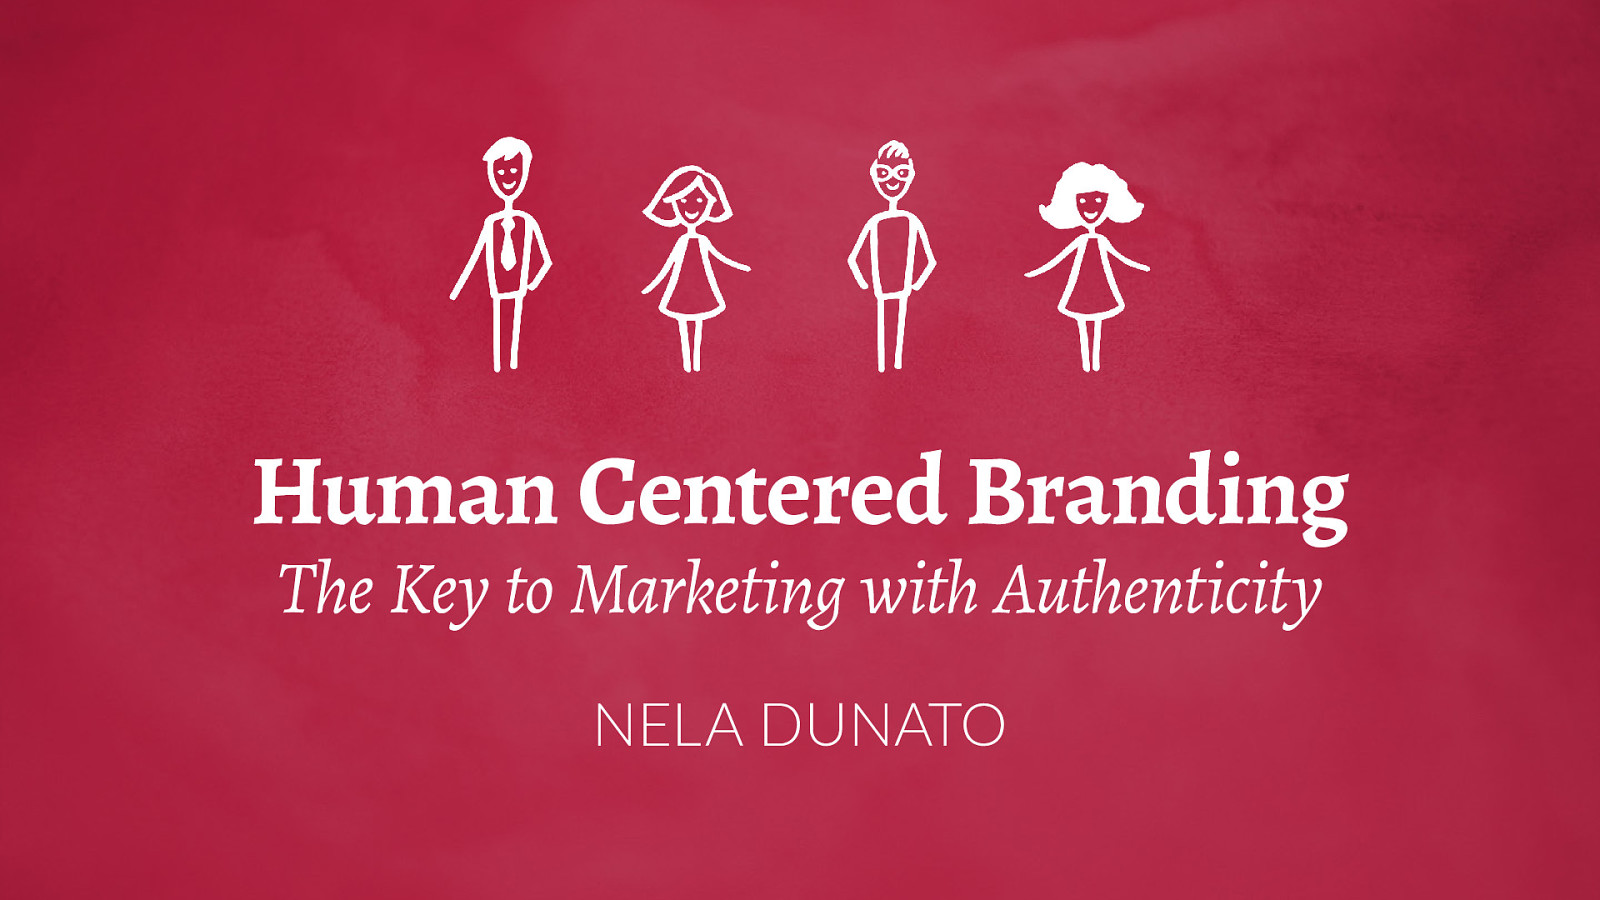 Human Centered Branding: The Key to Marketing with Authenticity